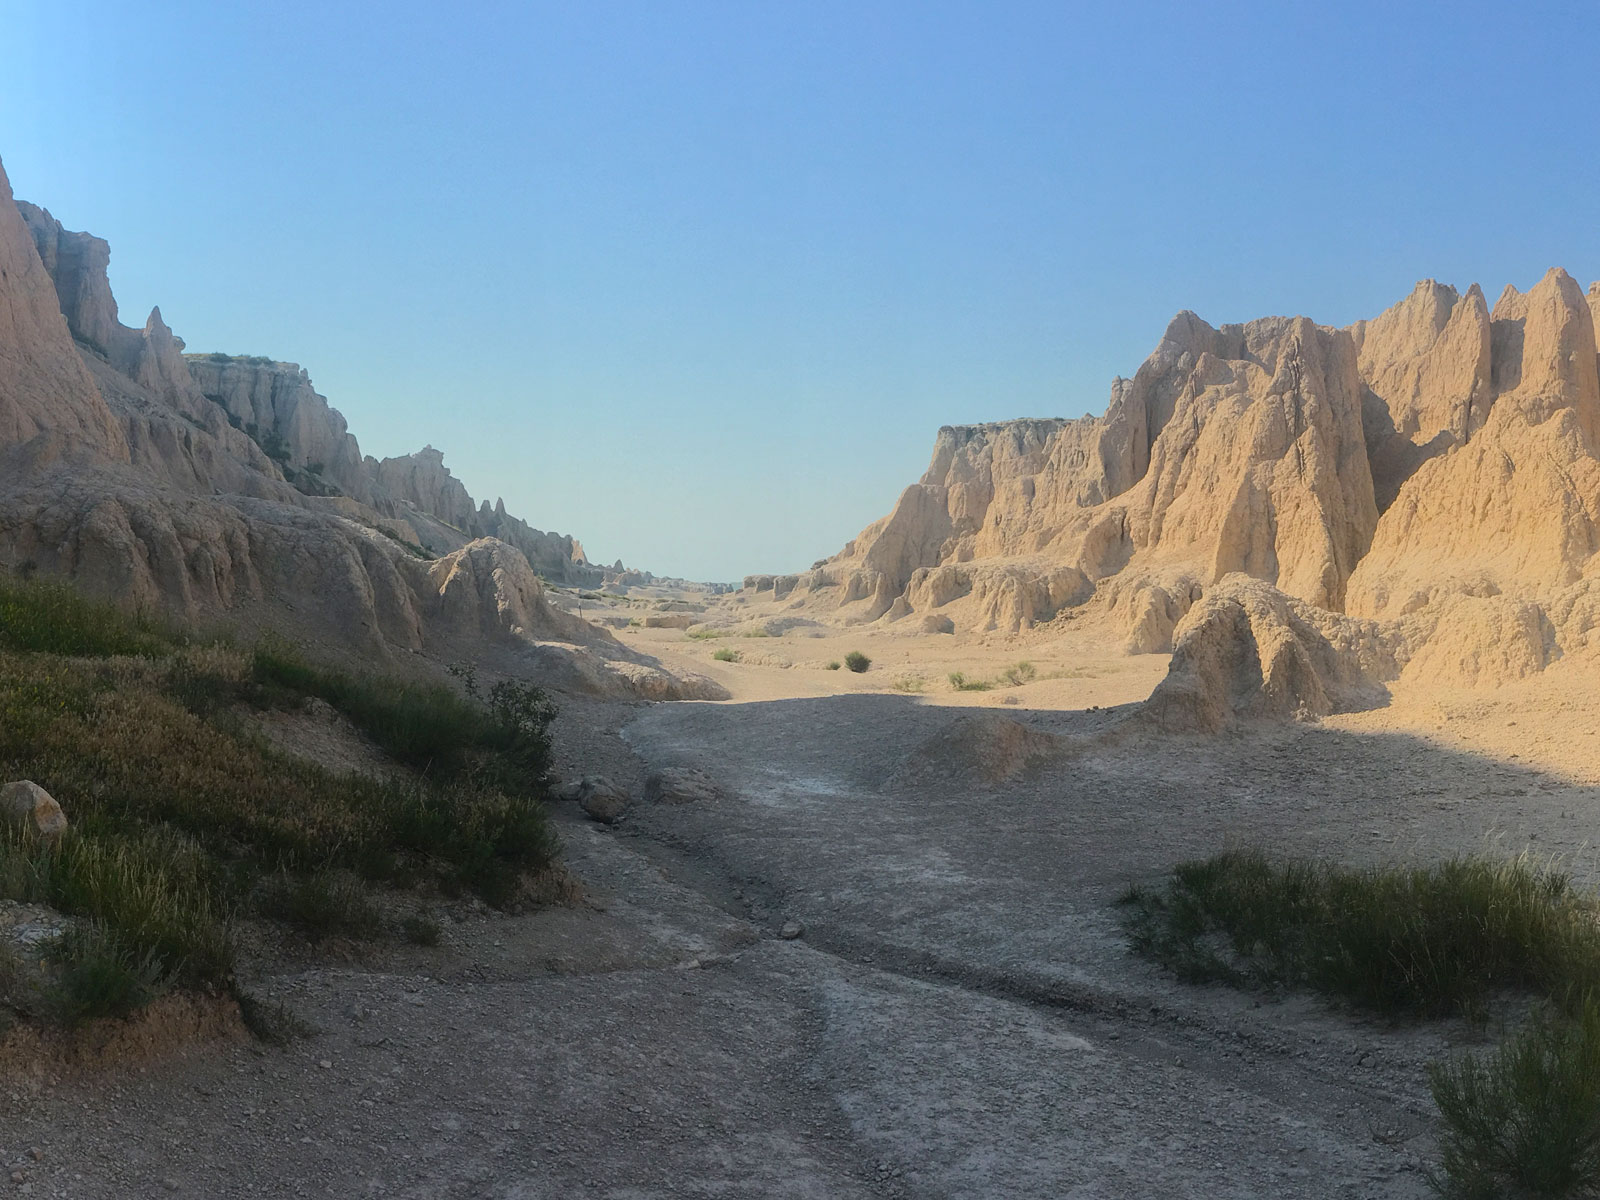 Wide view of the Notch Trail in the Badlands National Park of South Dakota